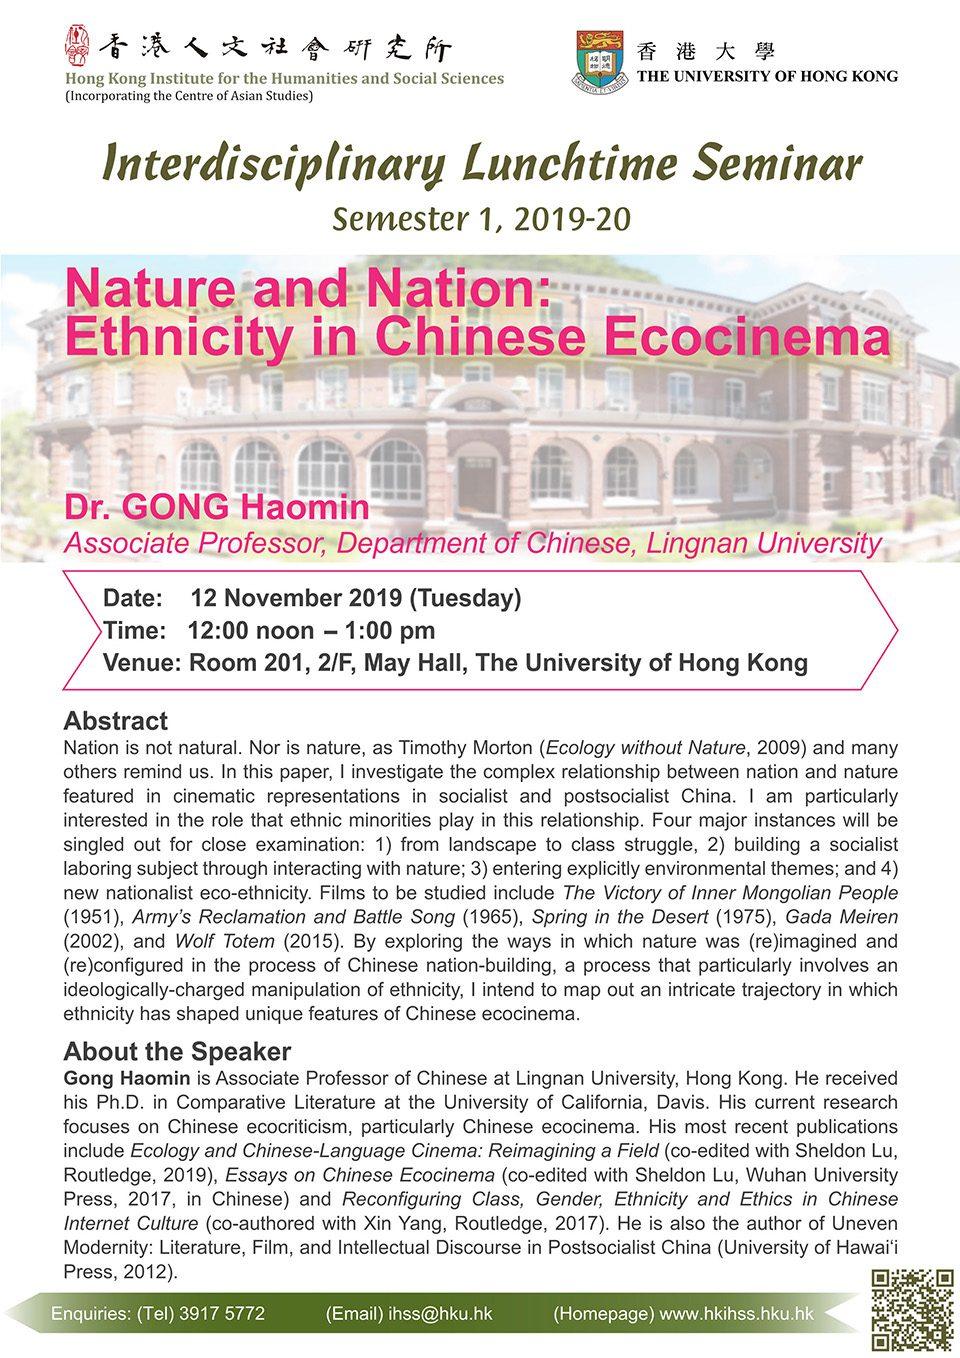 """Interdisciplinary Lunchtime Seminar on """"Nature and Nation: Ethnicity in Chinese Ecocinema"""" by Dr. GONG Haomin (November 12, 2019)"""